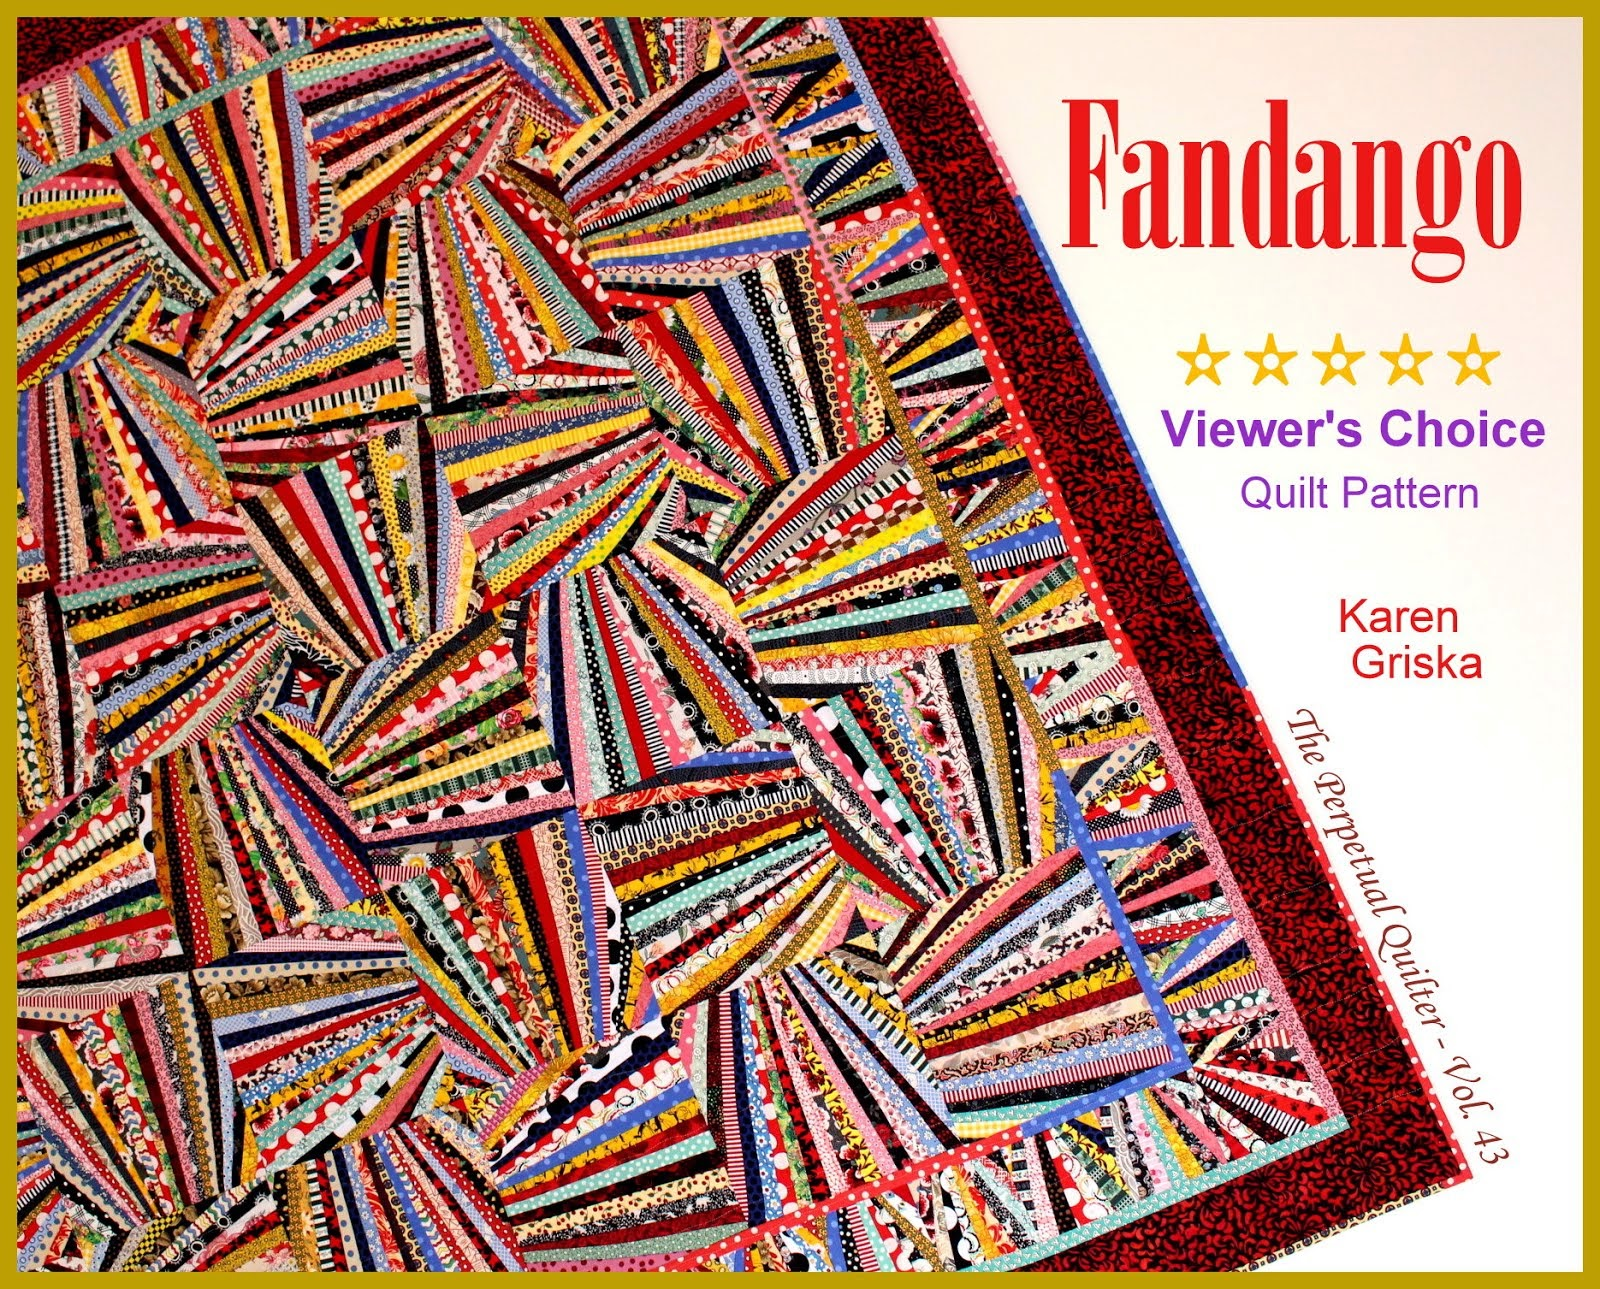 Fandango Quilt Pattern!